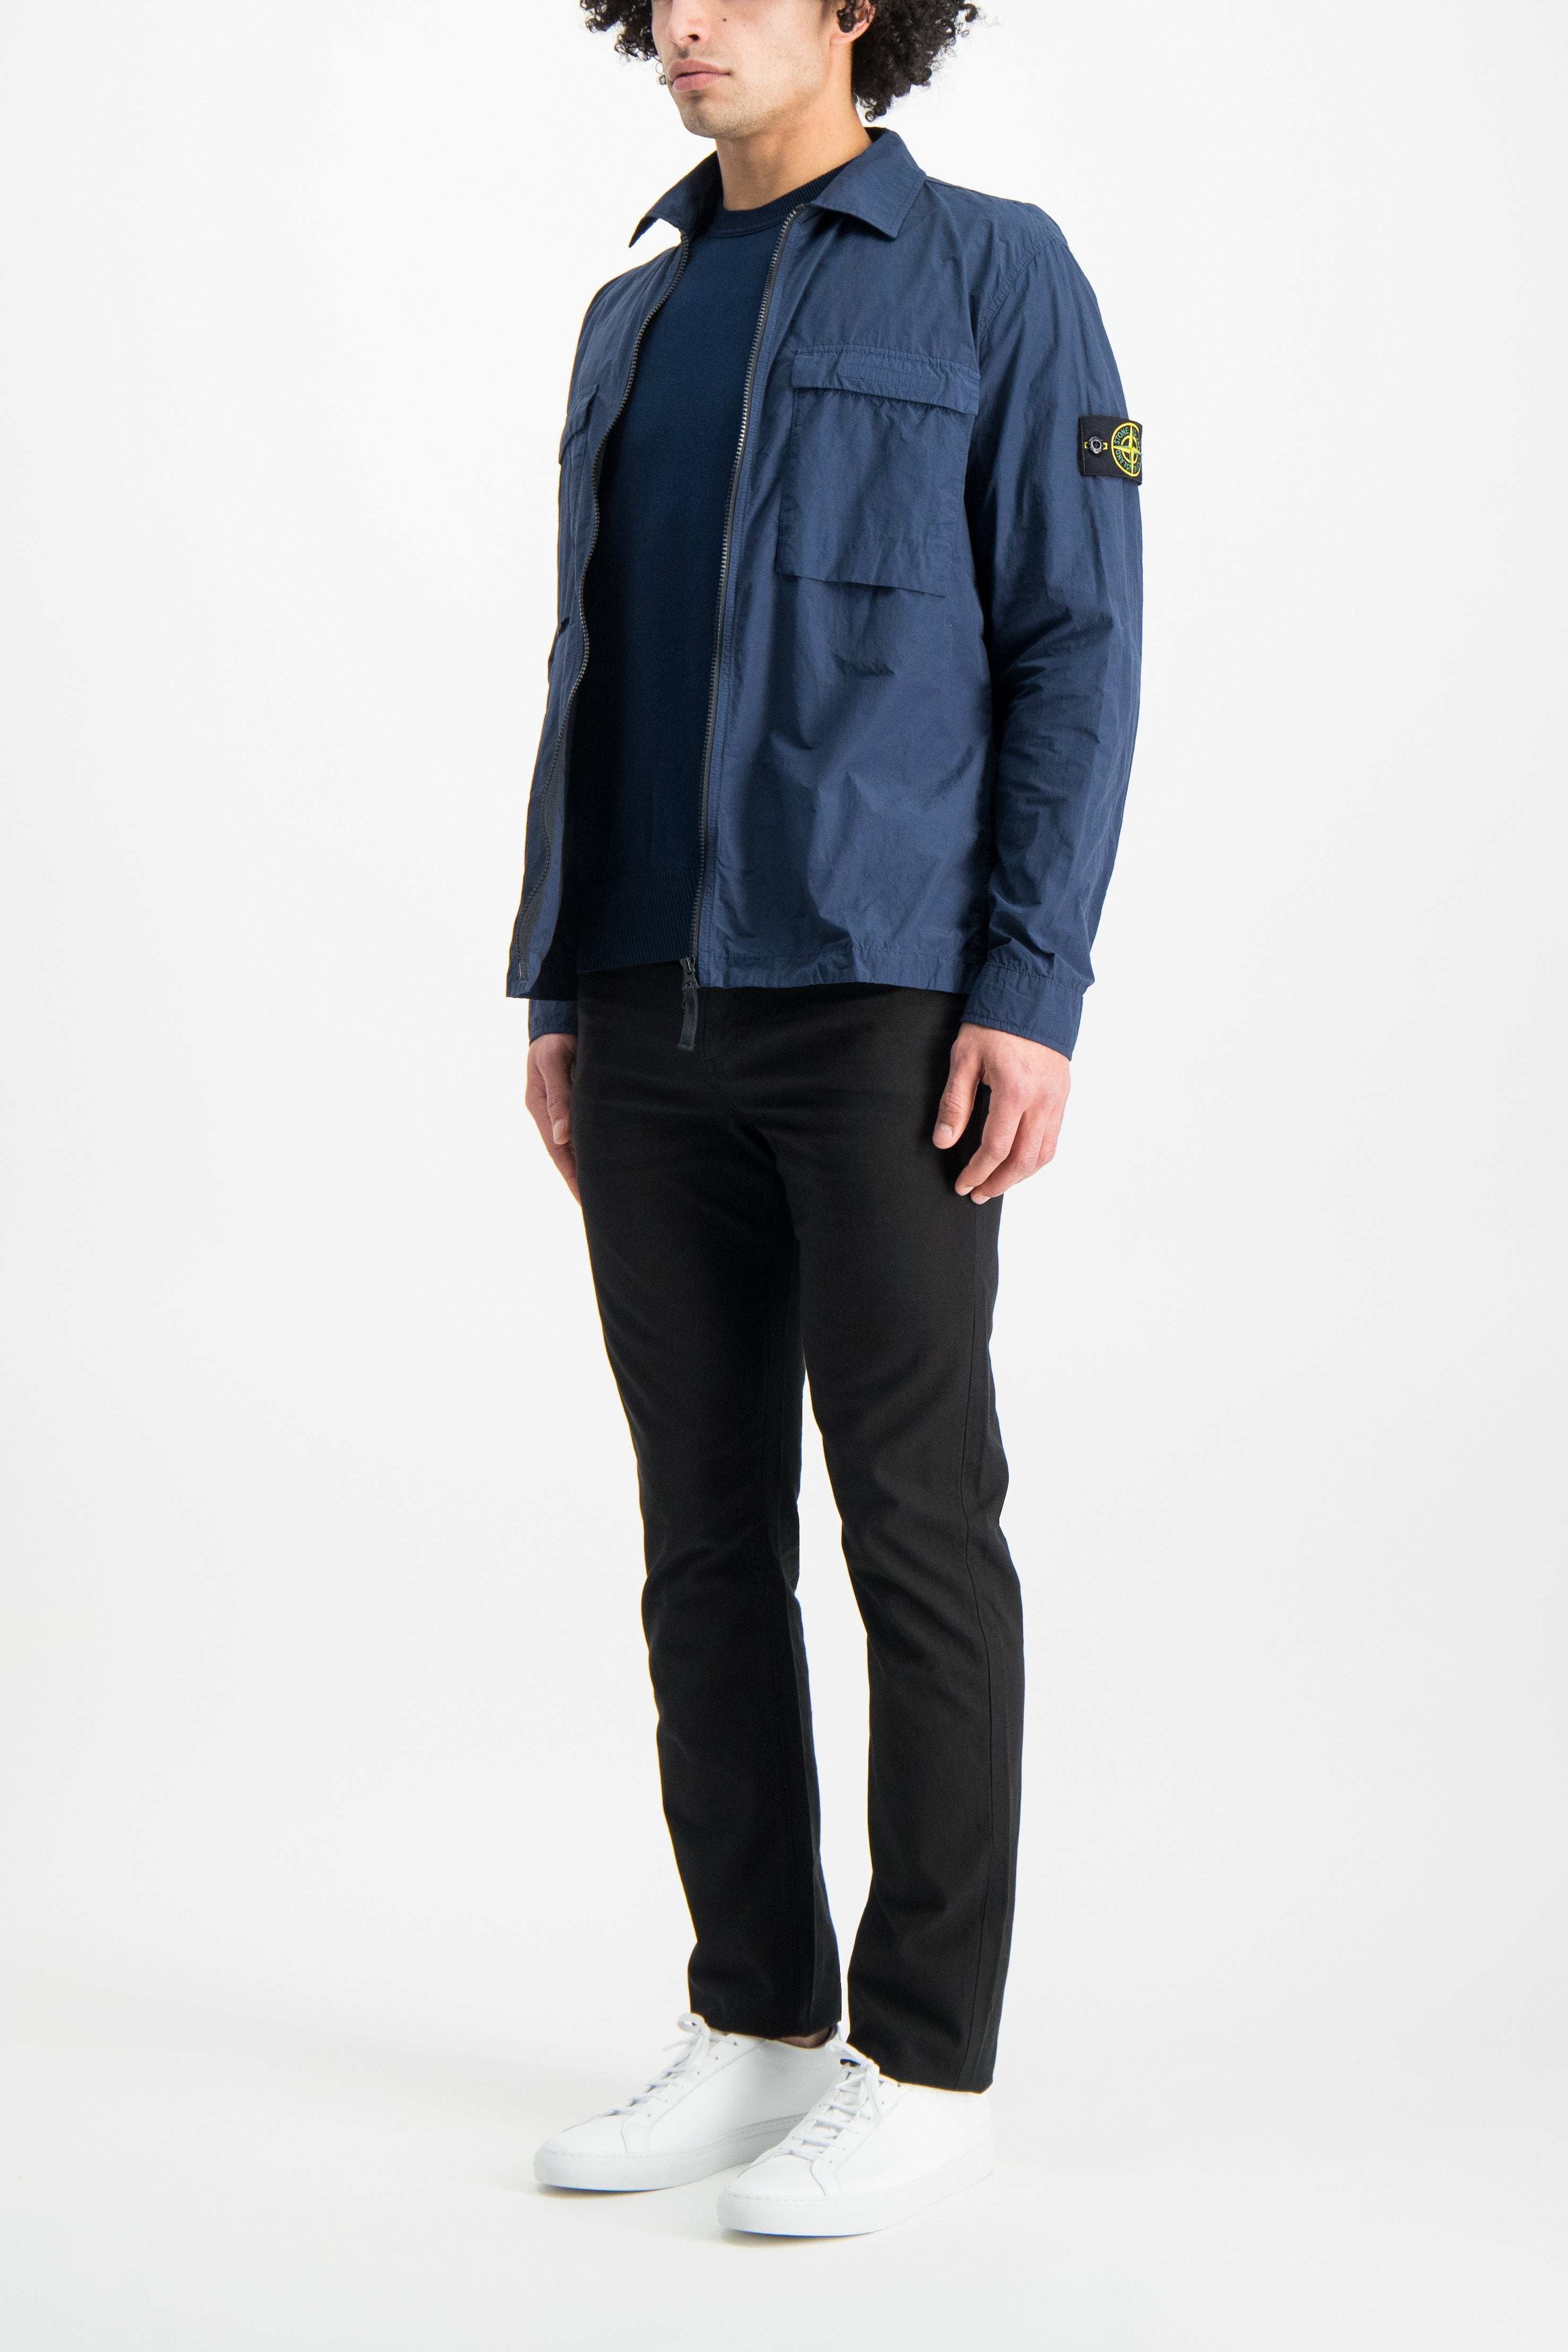 Full Body Image Of Model Wearing Stone Island Long Sleeve Knit Blue Marine